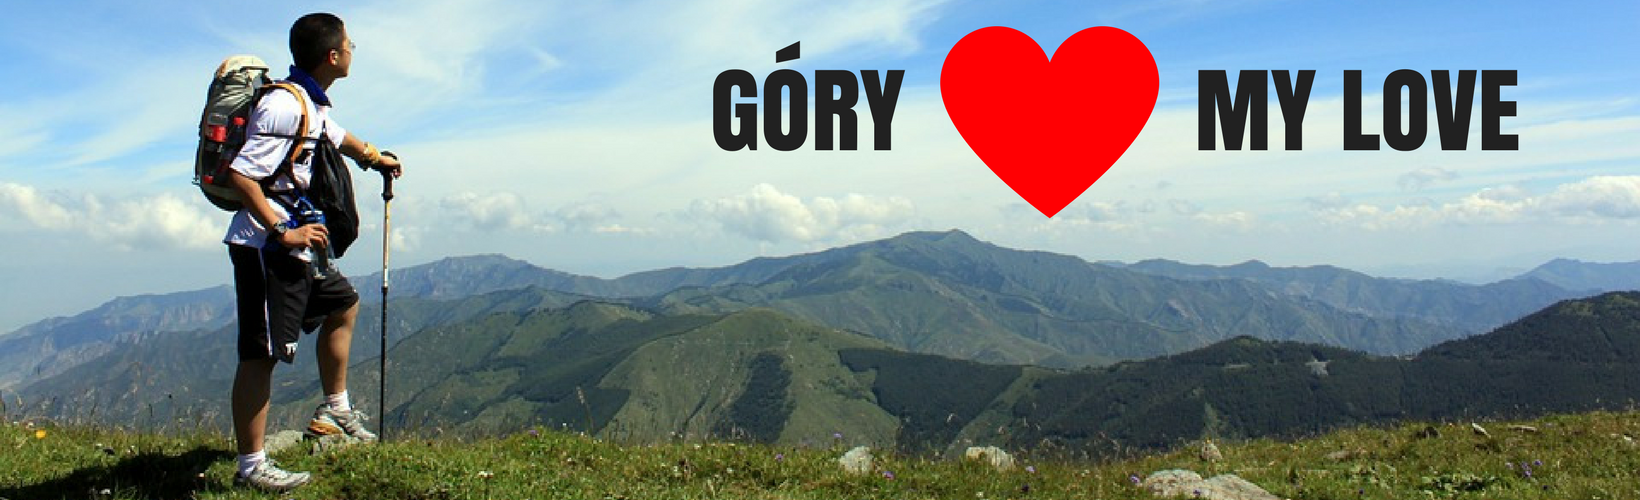 Grupa Góry my love 2